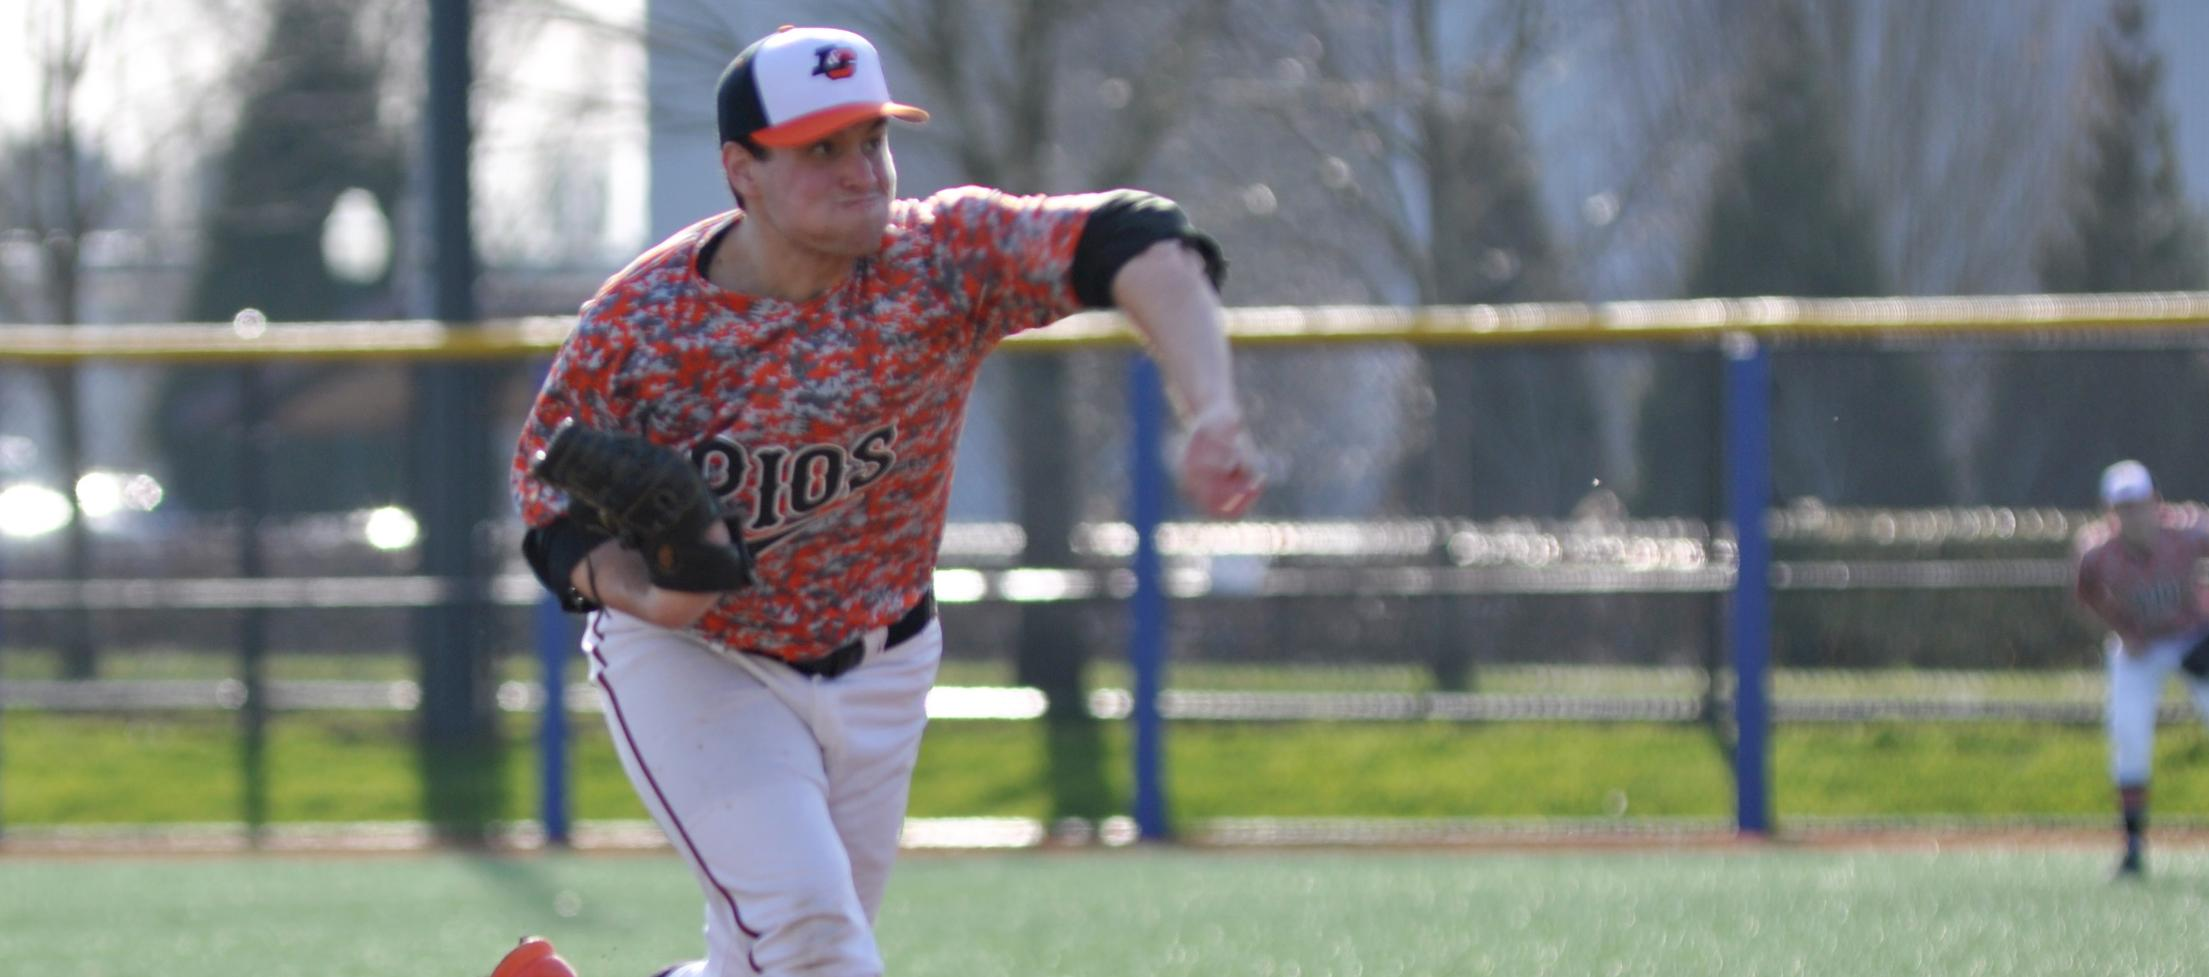 Landecker retires first 13 batters as Pios beat No. 14 Whitworth